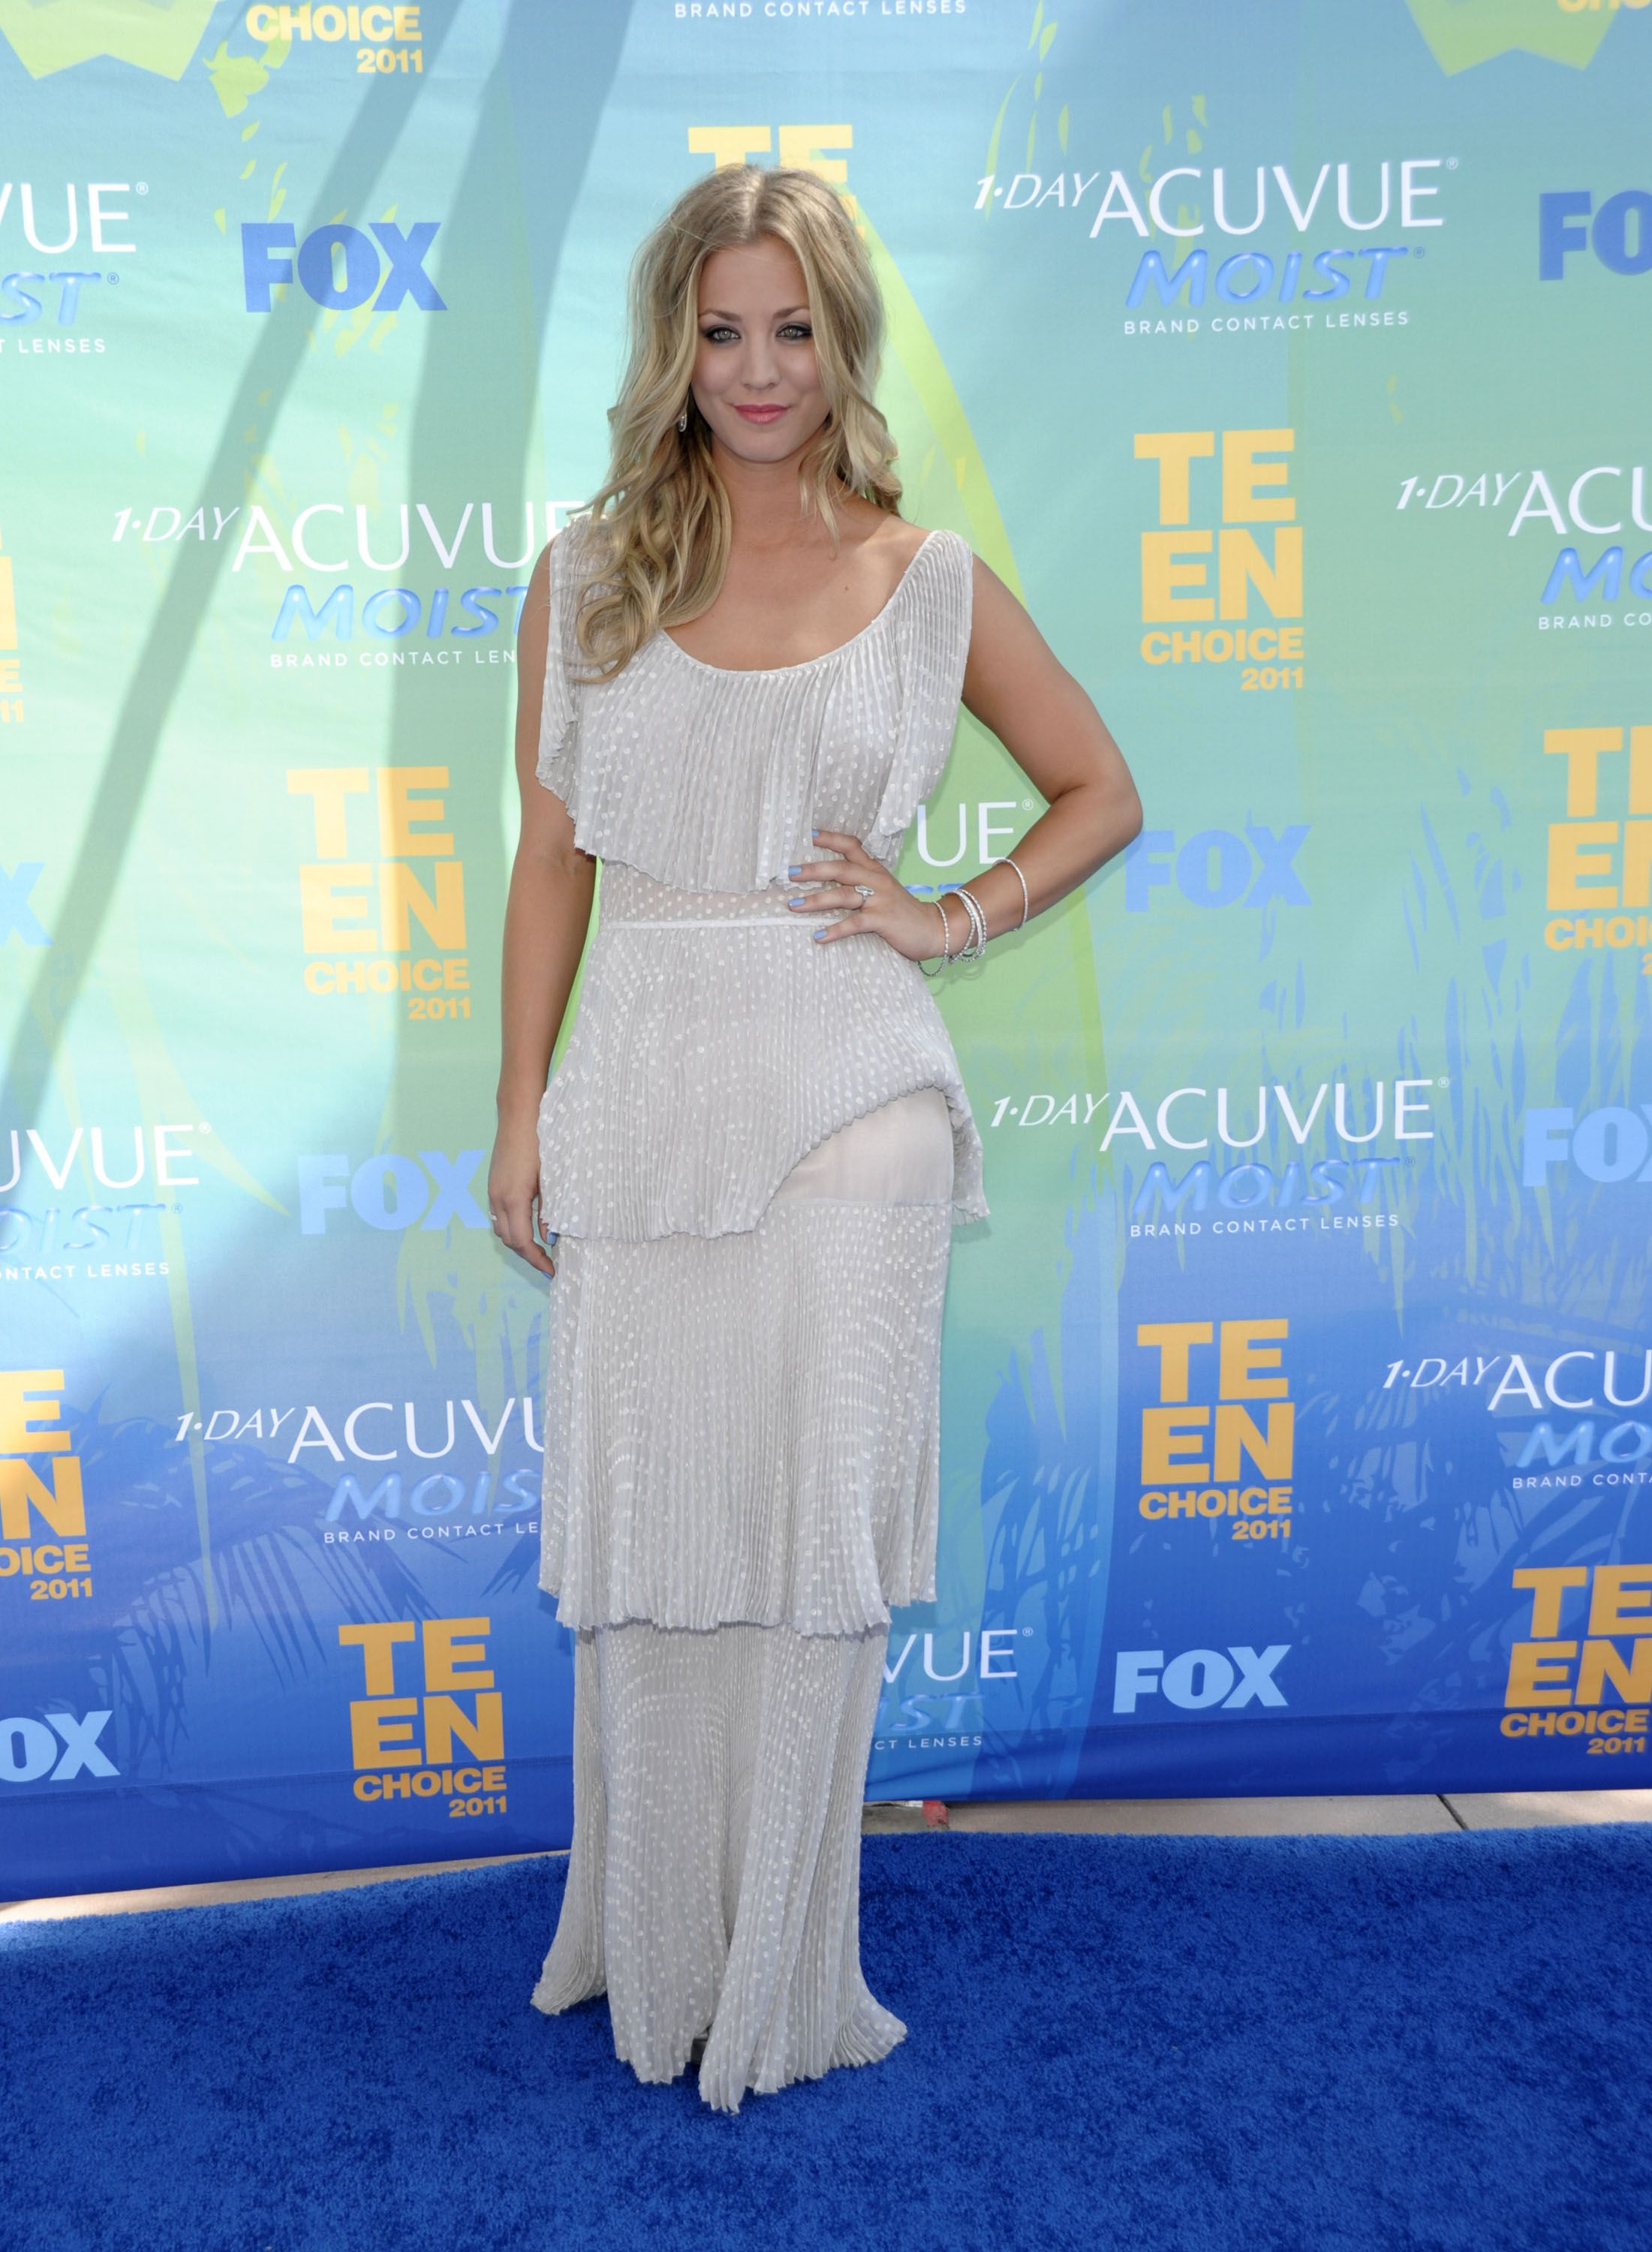 969550673_Kaley_Cuoco_2011_Teen_Choice_Awards6_122_567lo.jpg